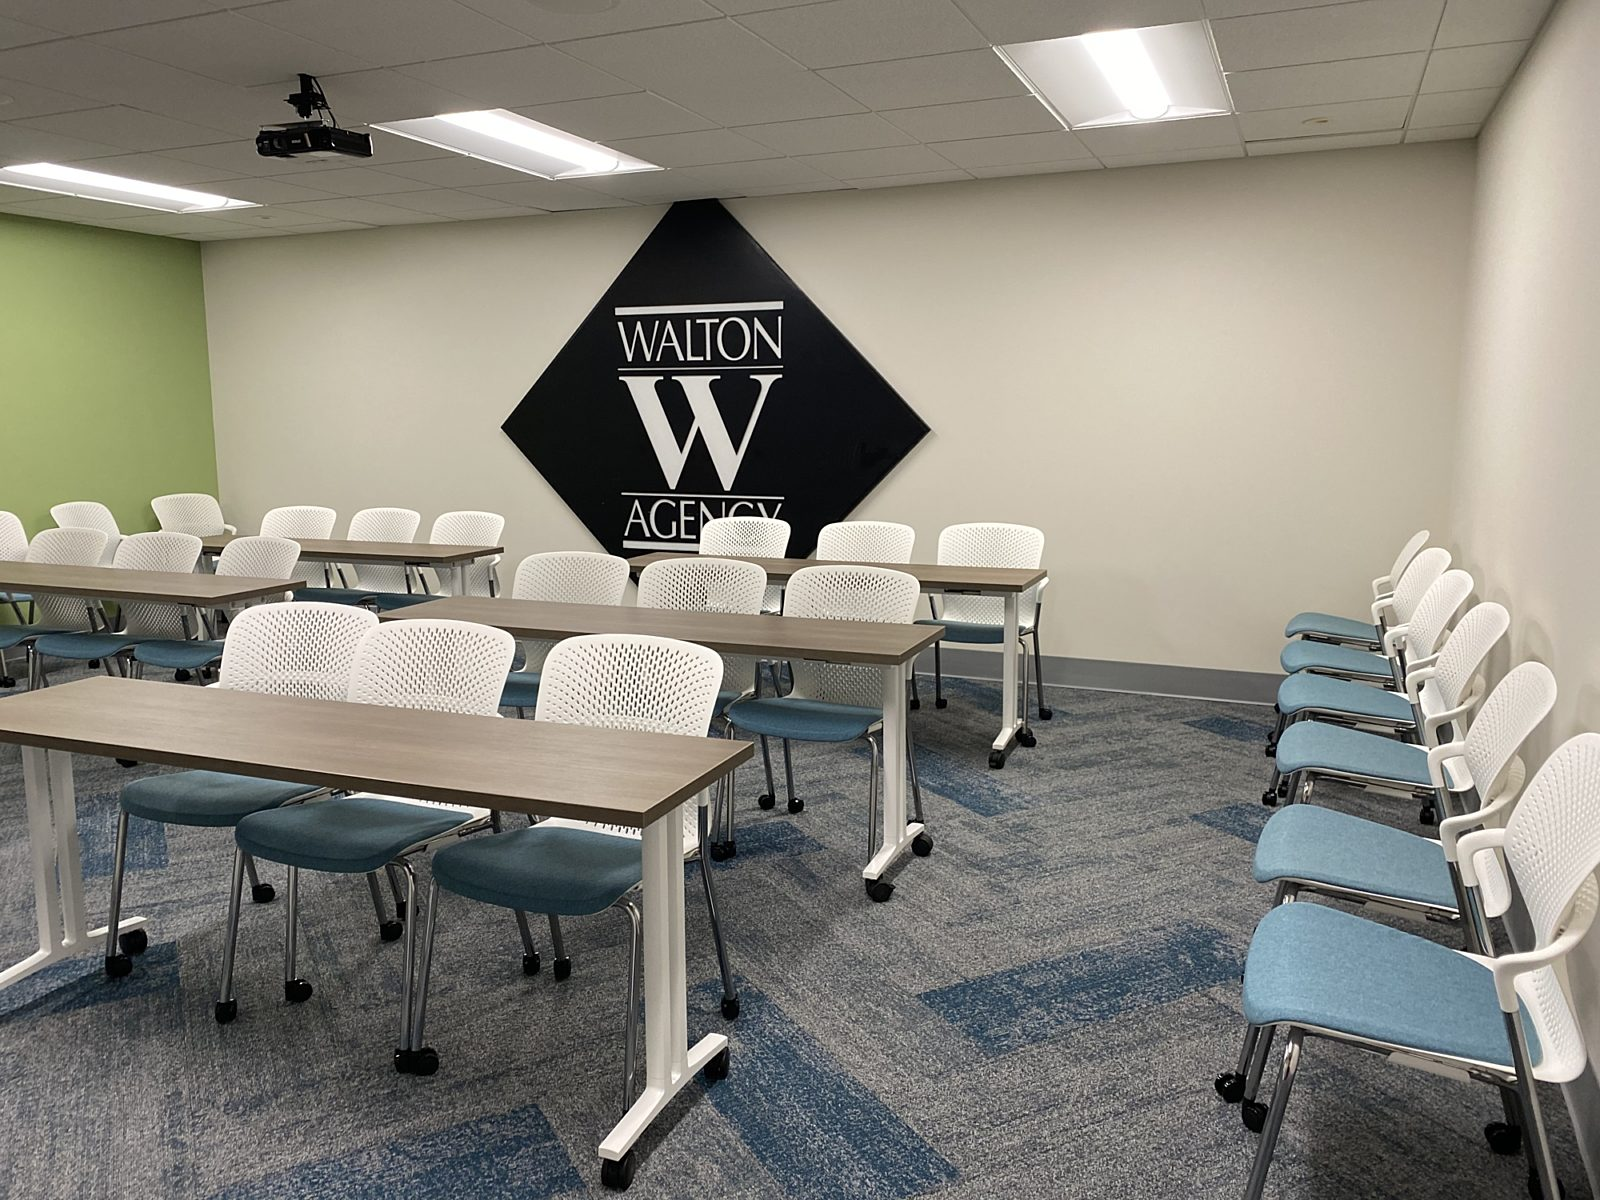 An image of a training room with mobile tables with wood tops, Caper chairs with blue seats and white shells arranged in rows in front of company logo.